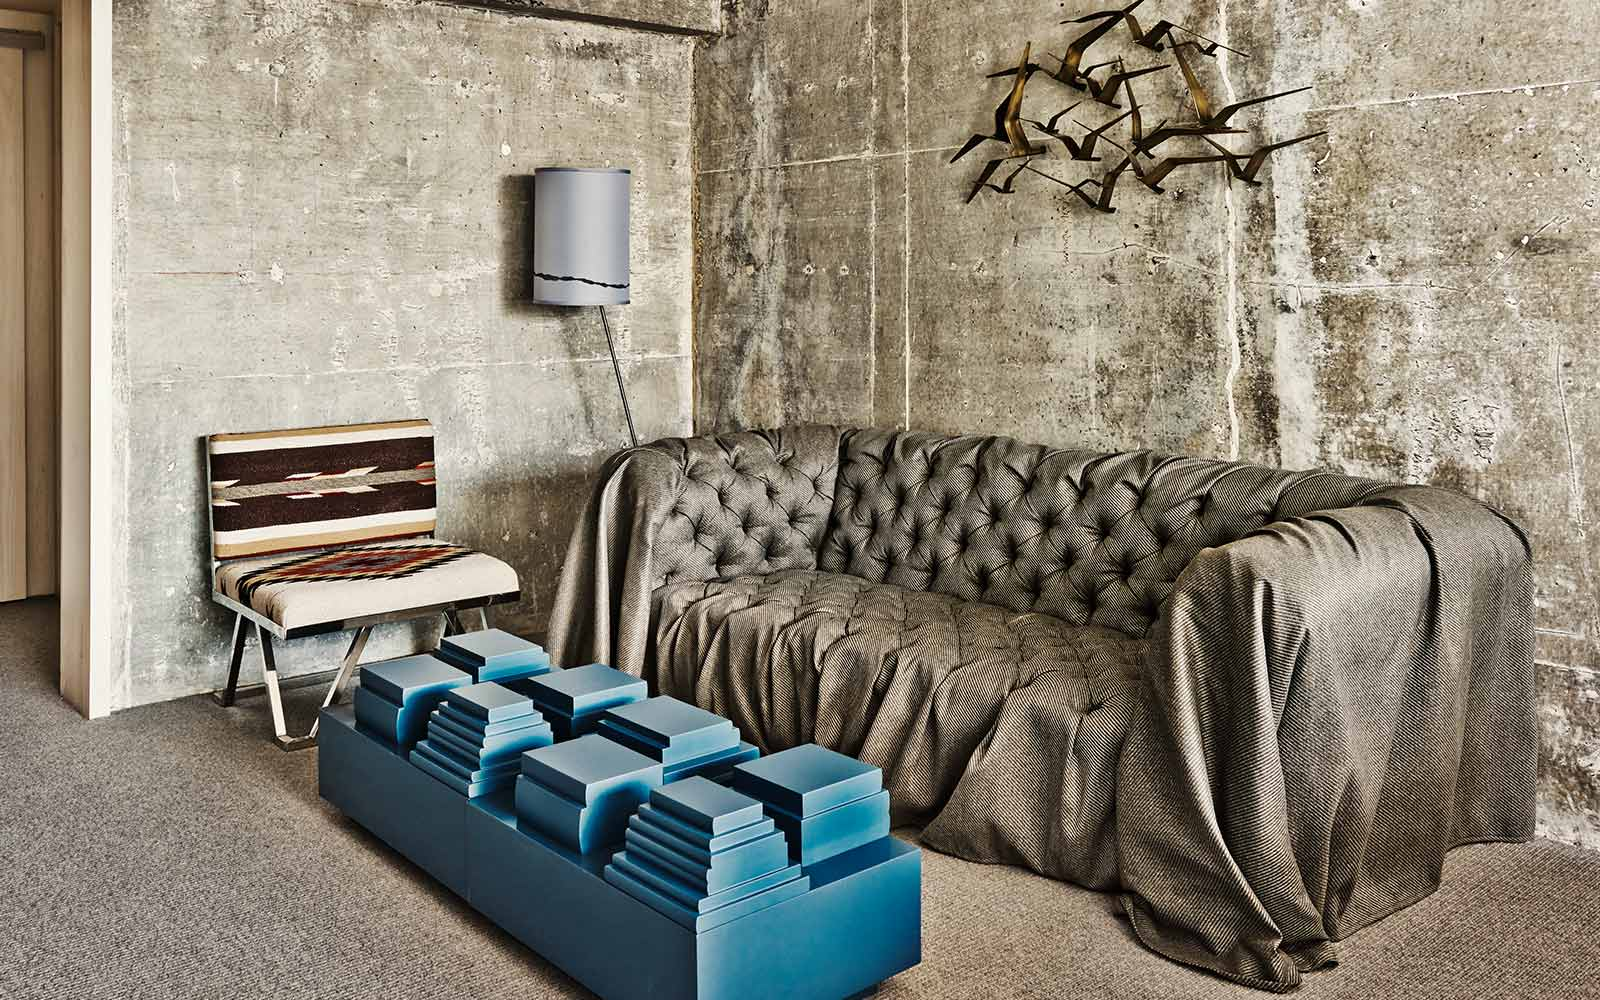 The Line Hotel - Room / Knibb Design (7)